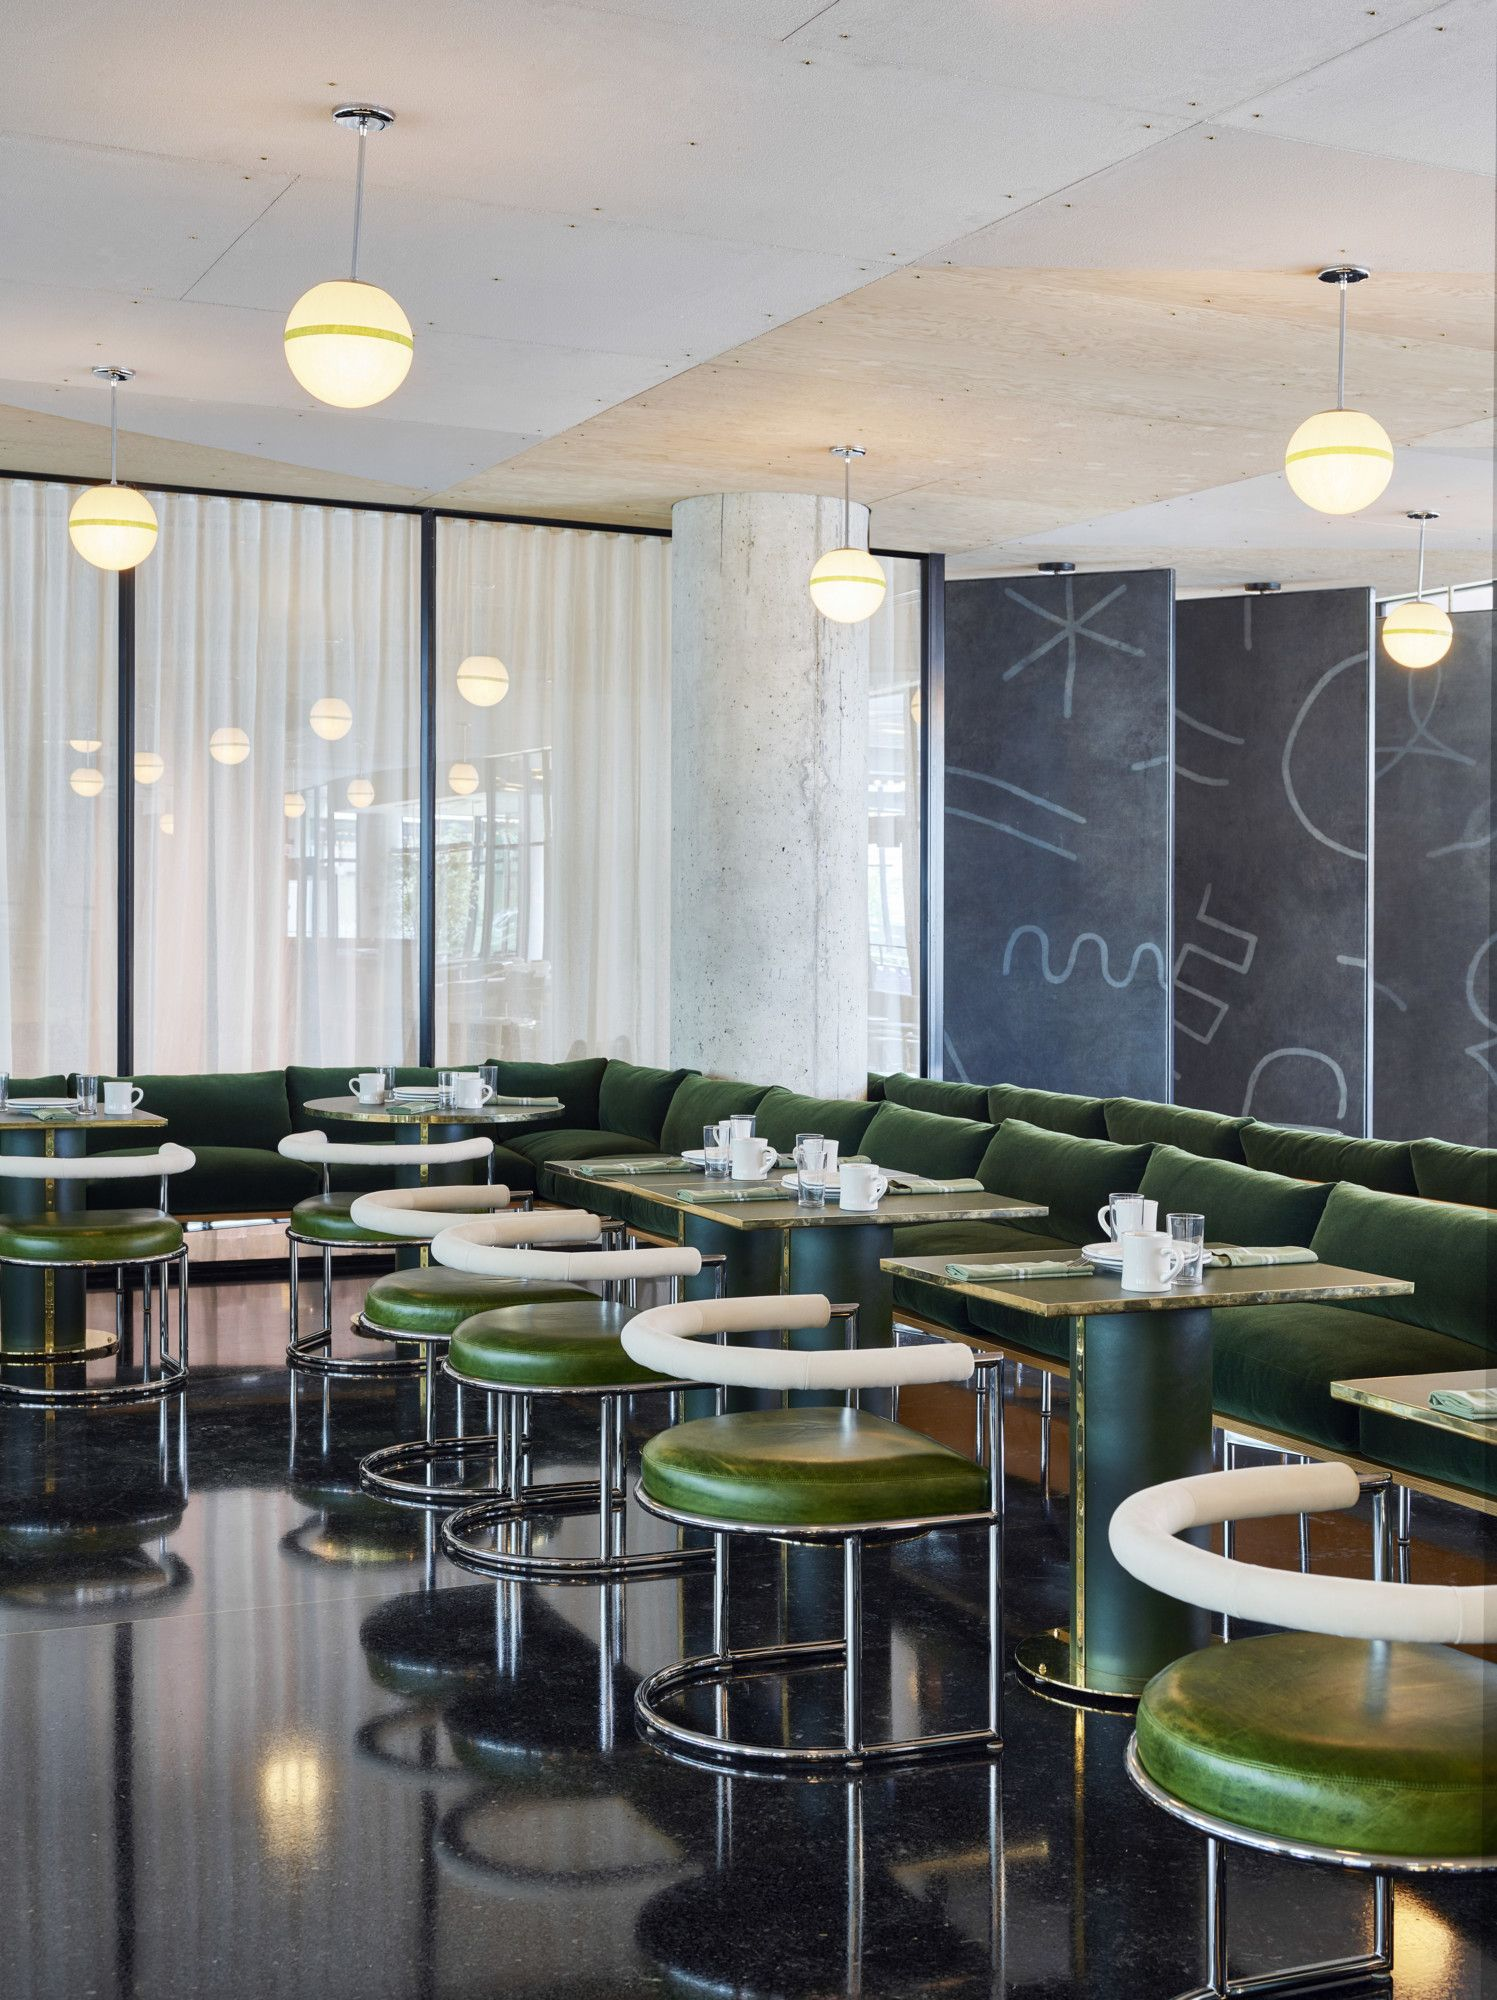 The ace hotel 39 s newest location embraces chicago 39 s design - Commercial interior design chicago ...